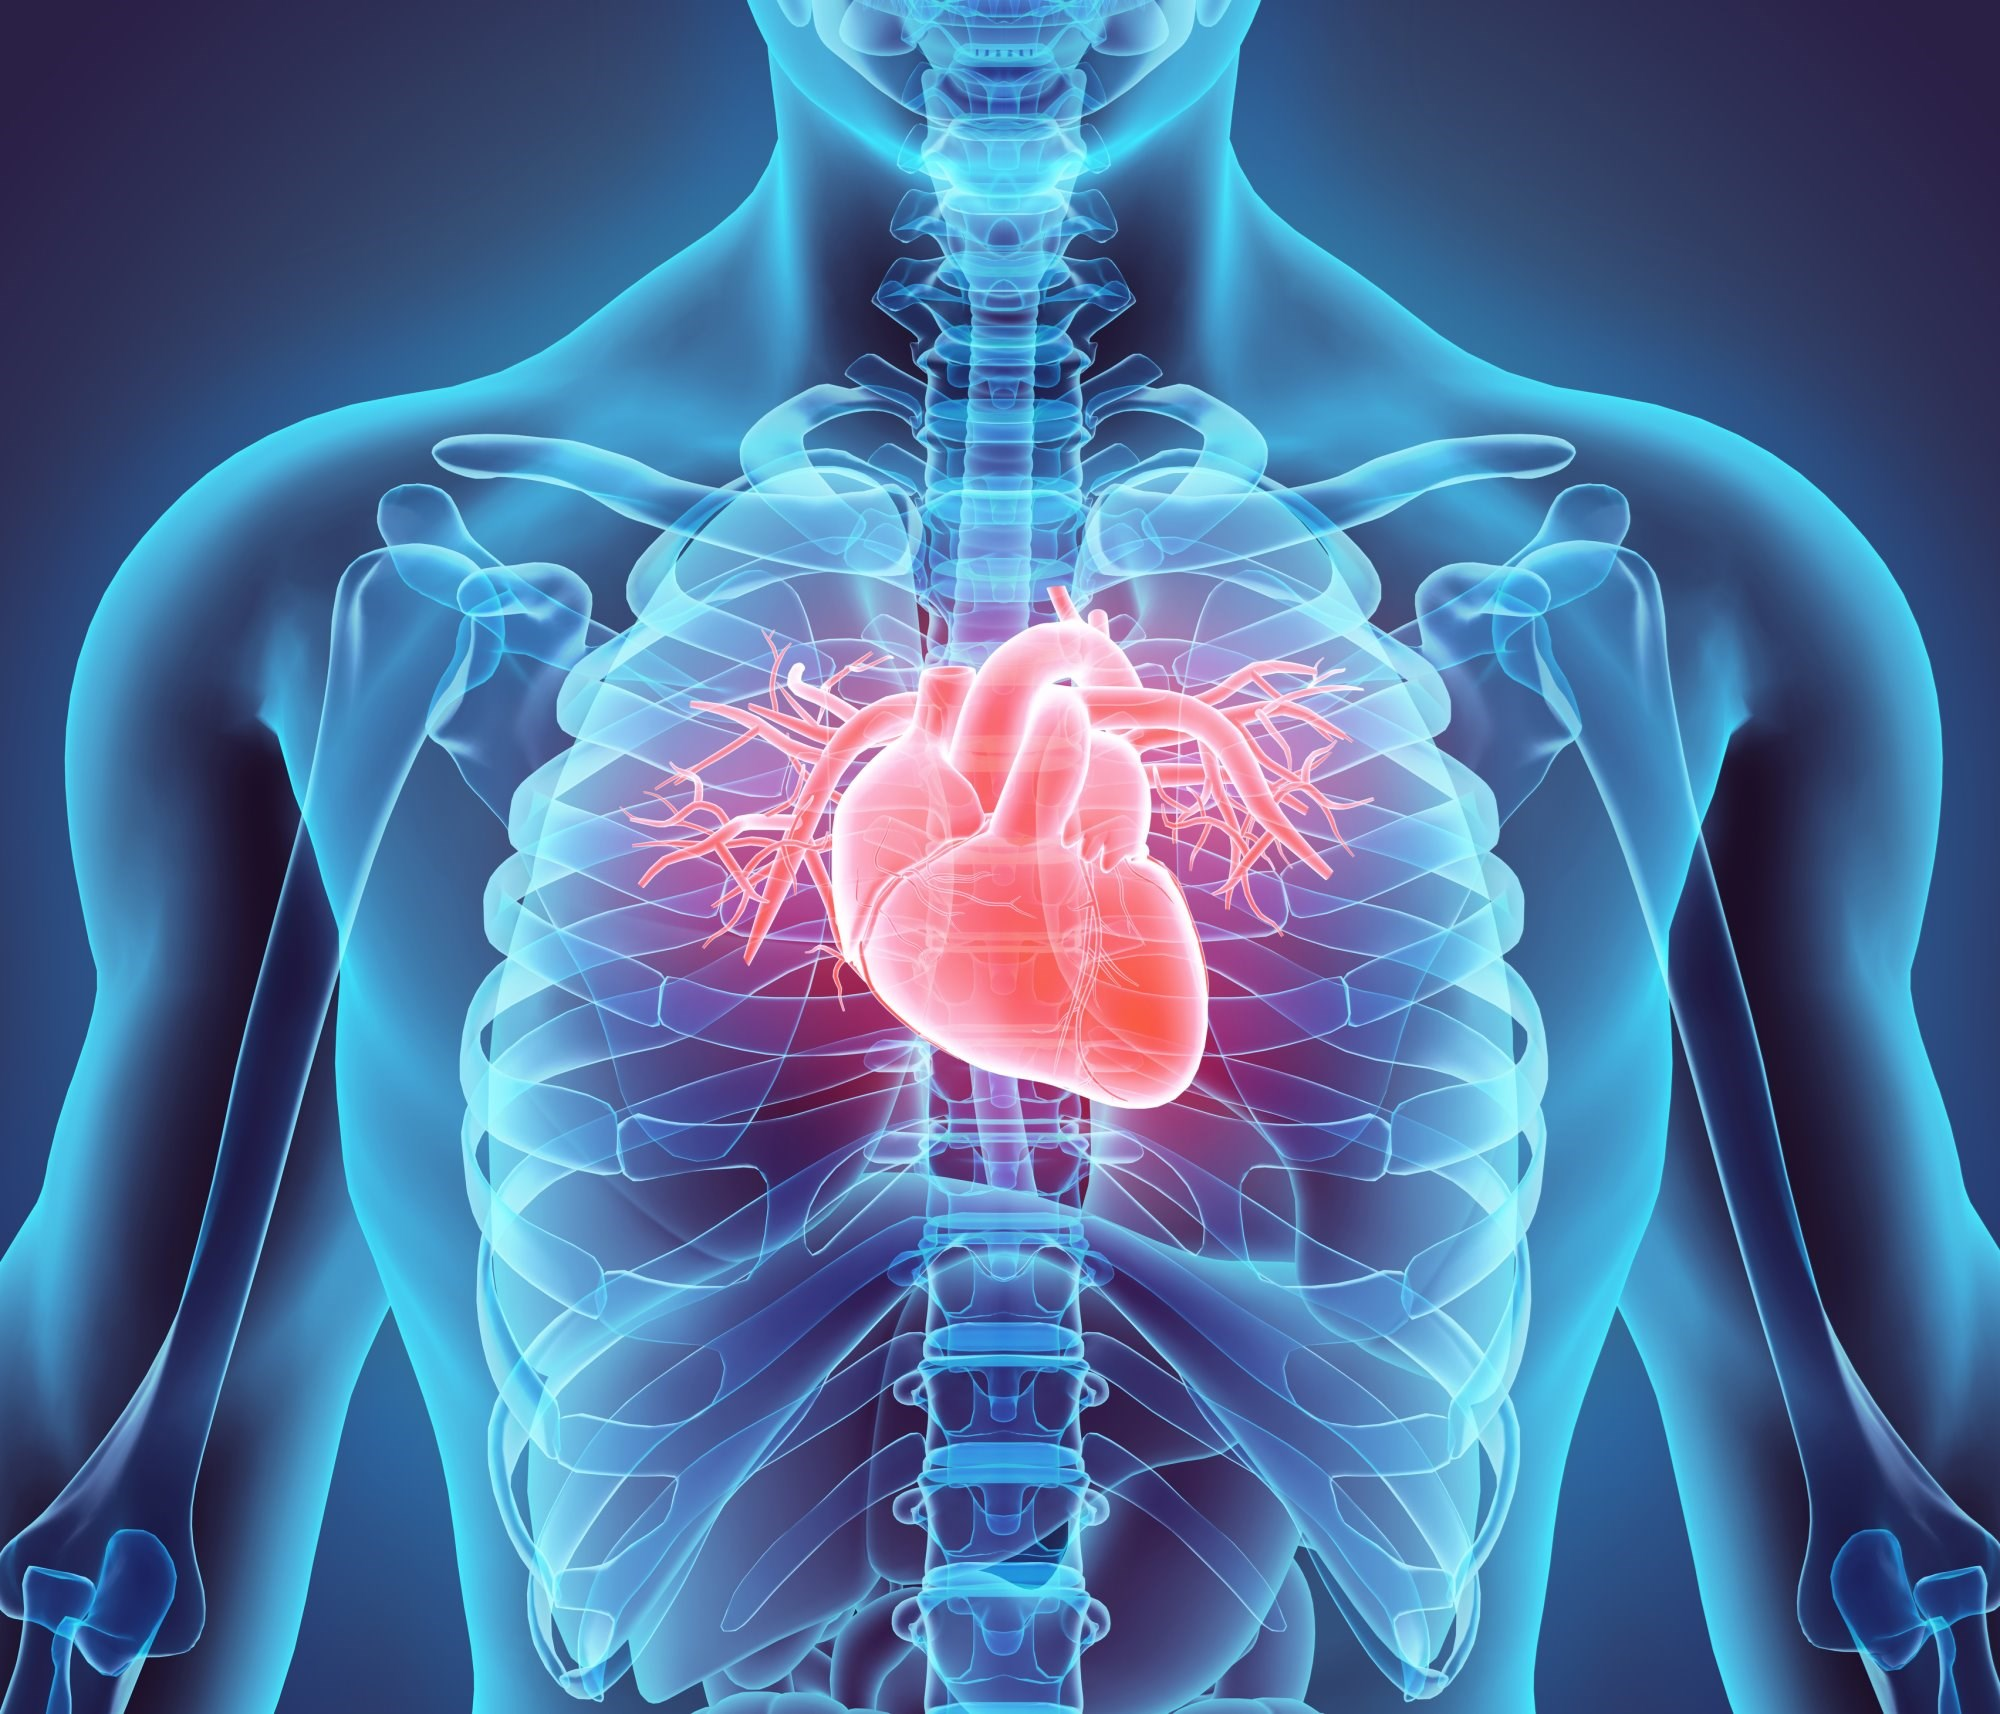 Skin Sodium Linked to LVH in CKD Patients